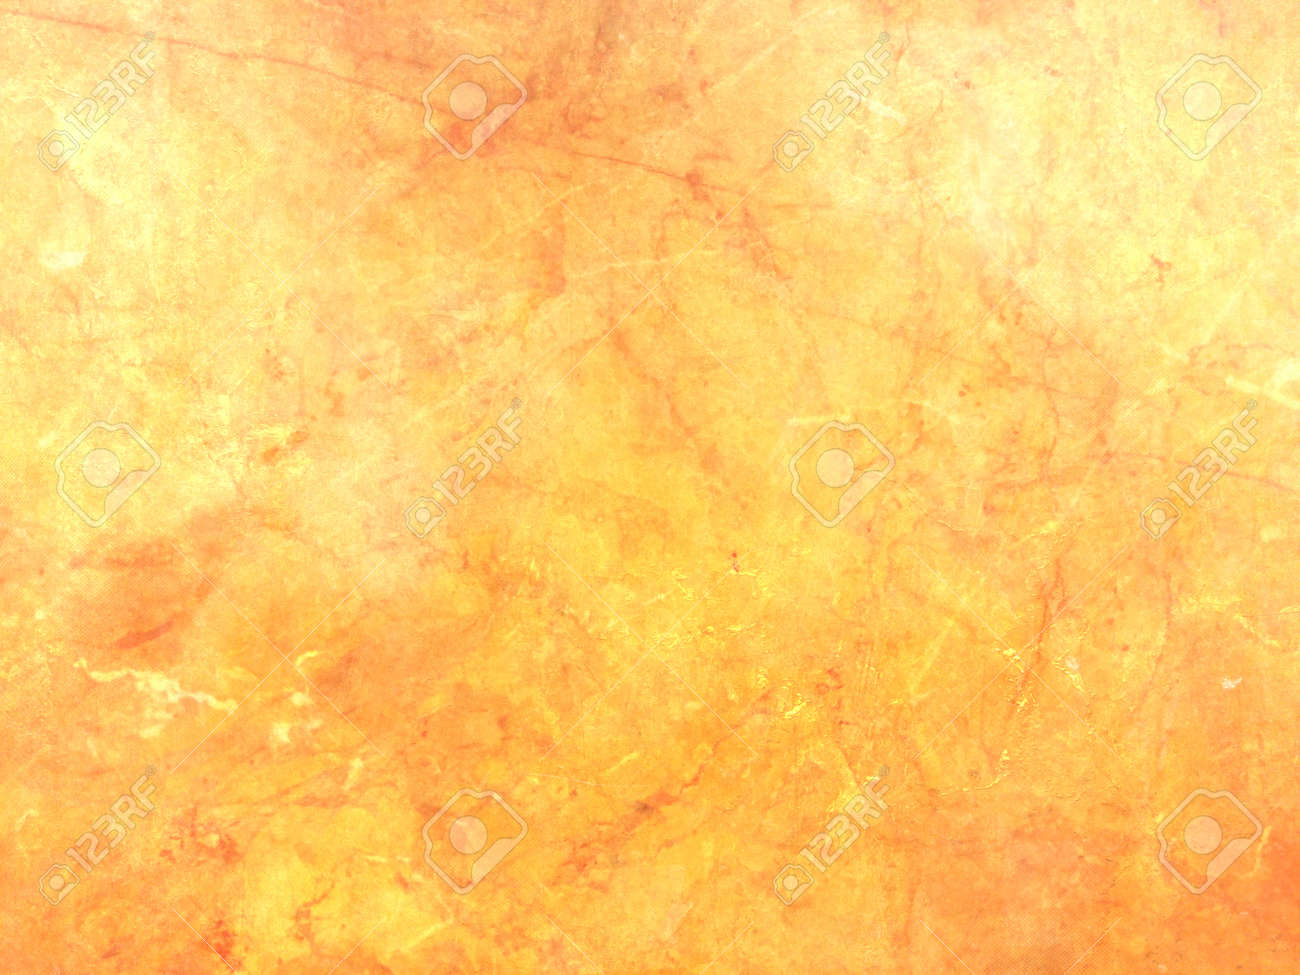 Orange Yellow Background With Soft Marble Texture Abstract Stock Photo Picture And Royalty Free Image Image 128872429